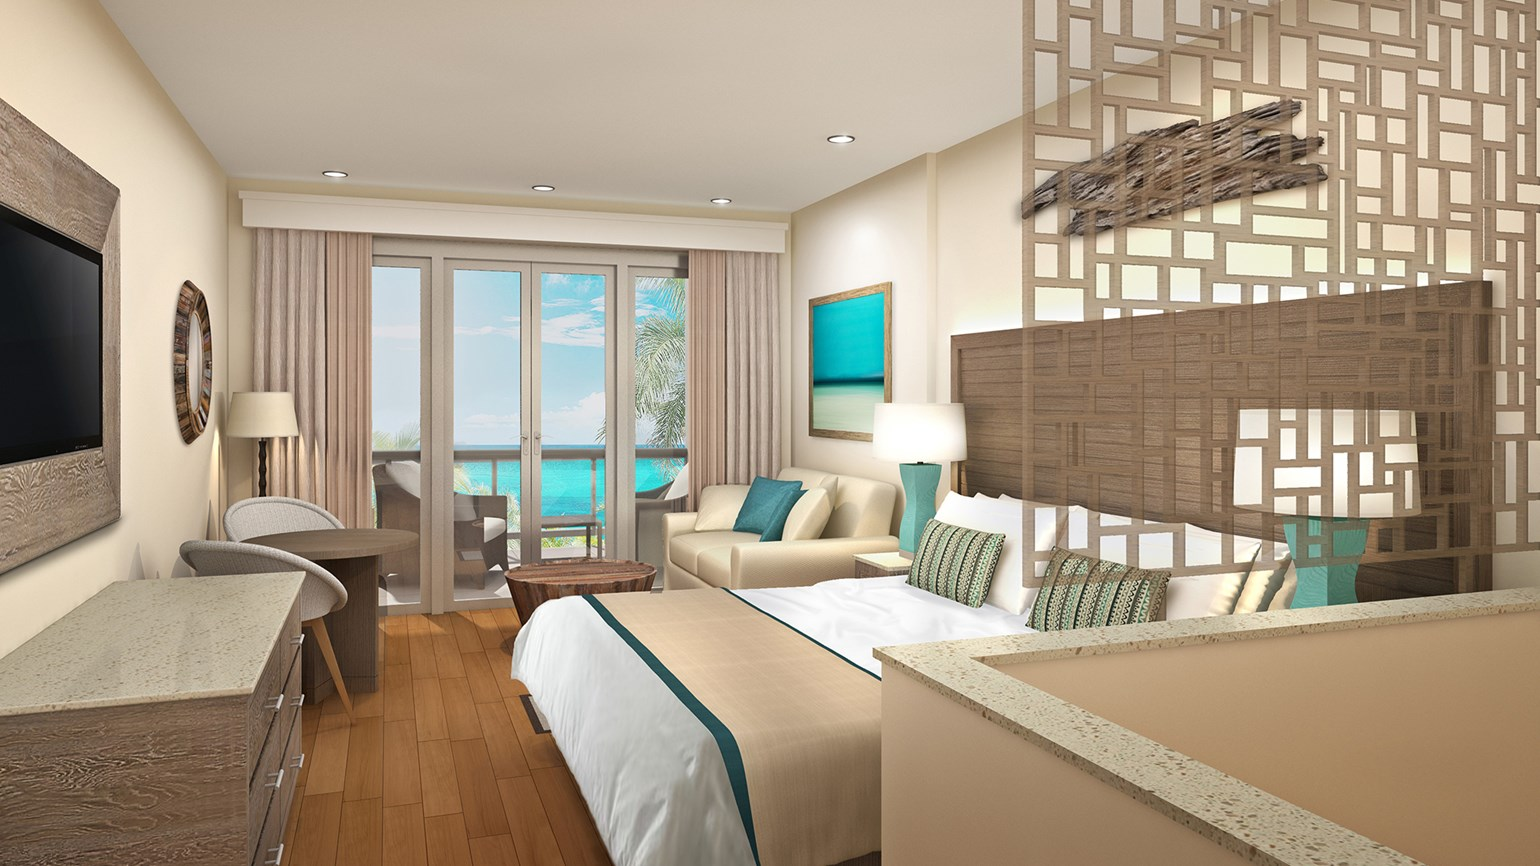 Marriott acquiring Elegant Hotels of Barbados